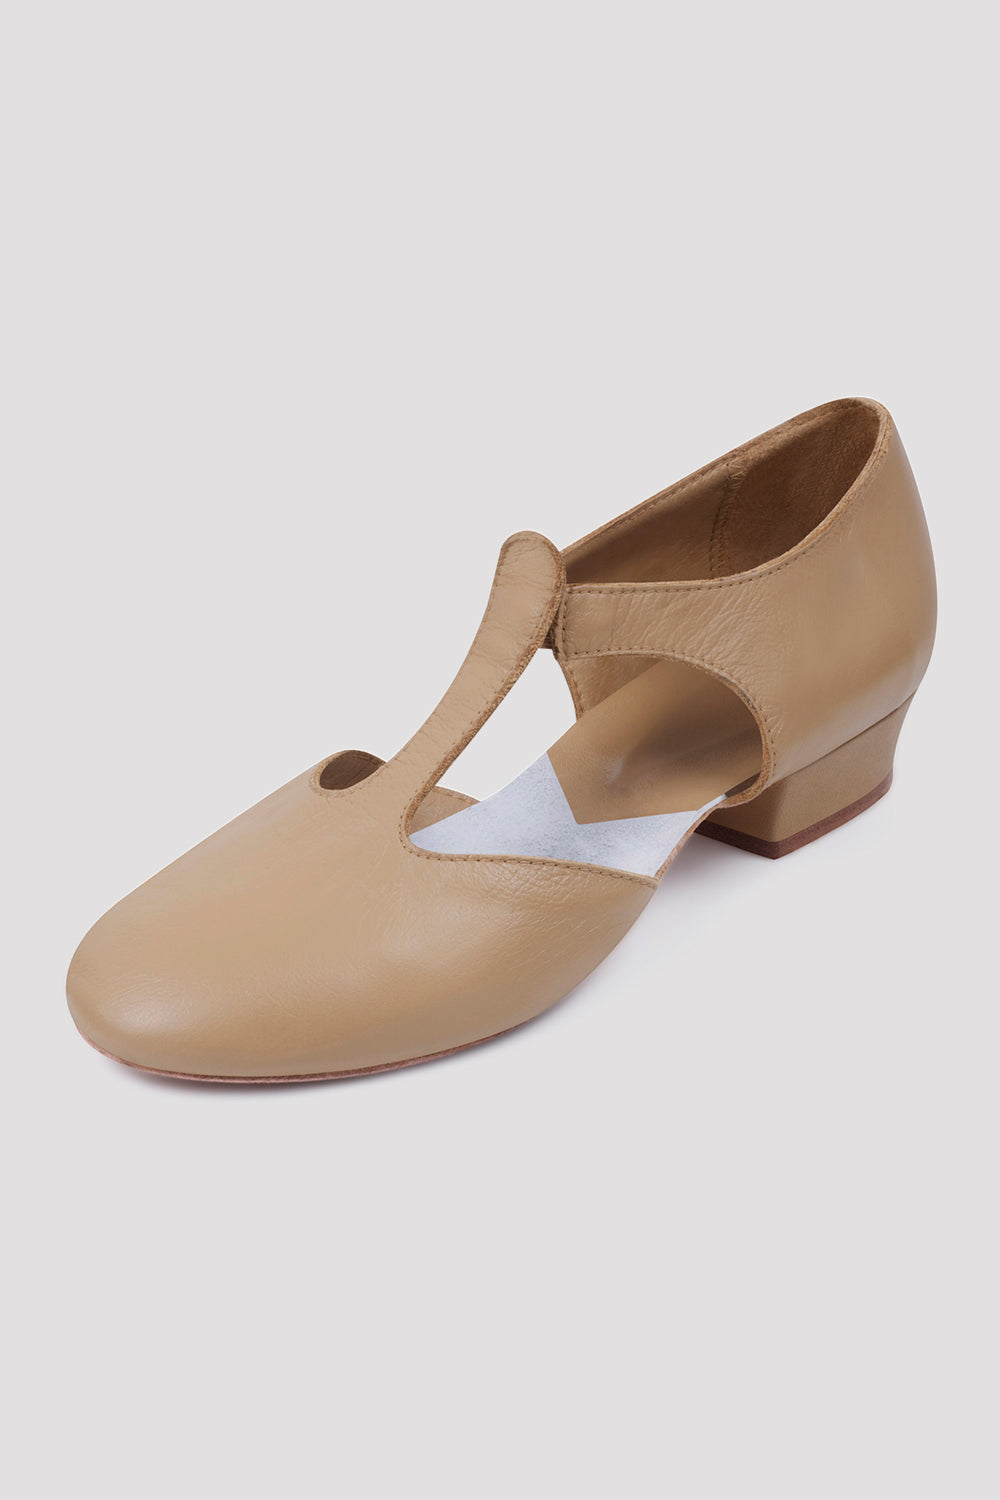 Ladies Grecian Sandal Teaching Shoes - BLOCH US